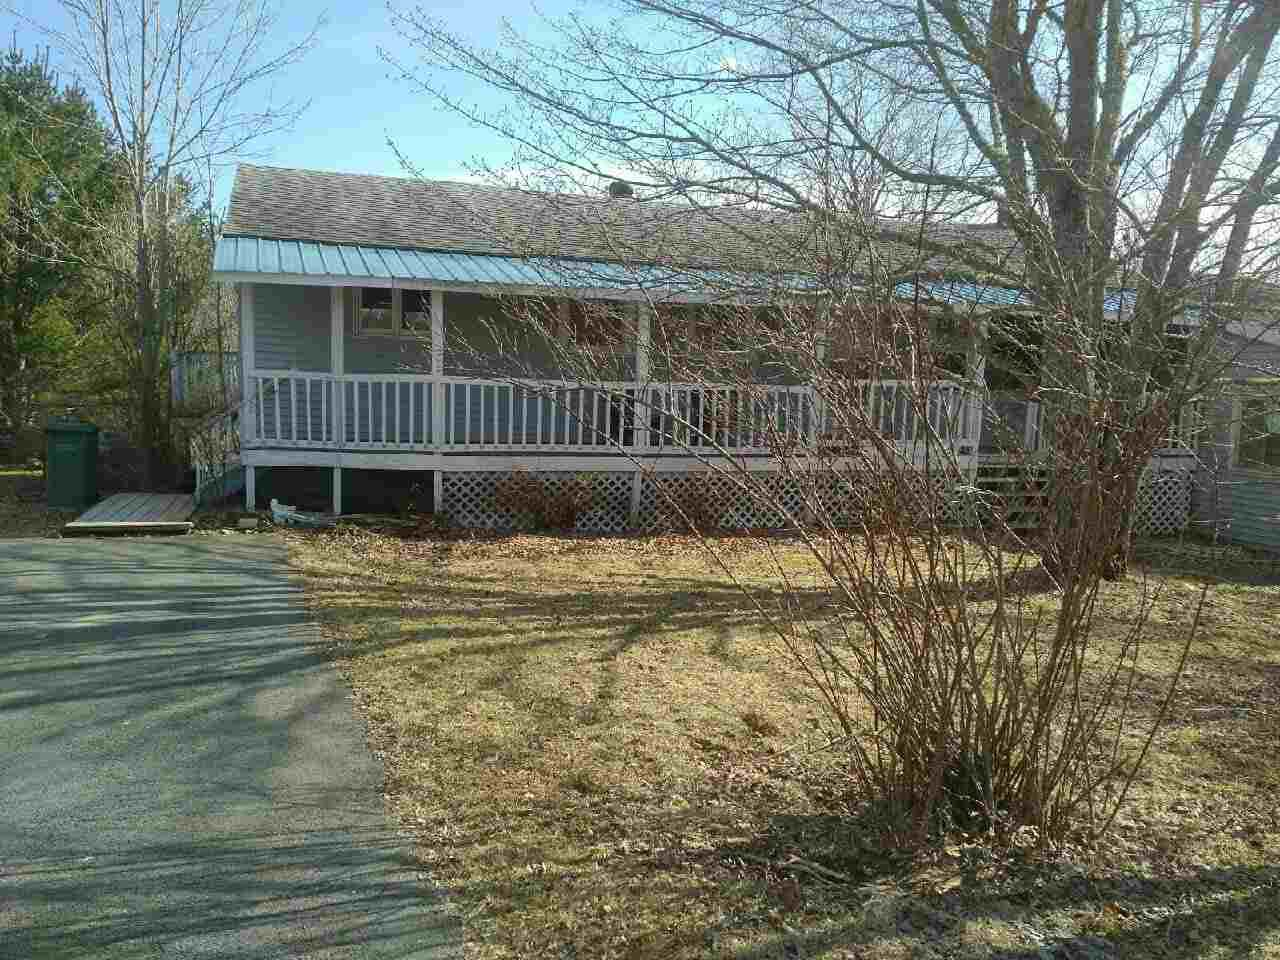 Photo 3: Photos: 1 Old Post Road in Enfield: 105-East Hants/Colchester West Residential for sale (Halifax-Dartmouth)  : MLS®# 202006691